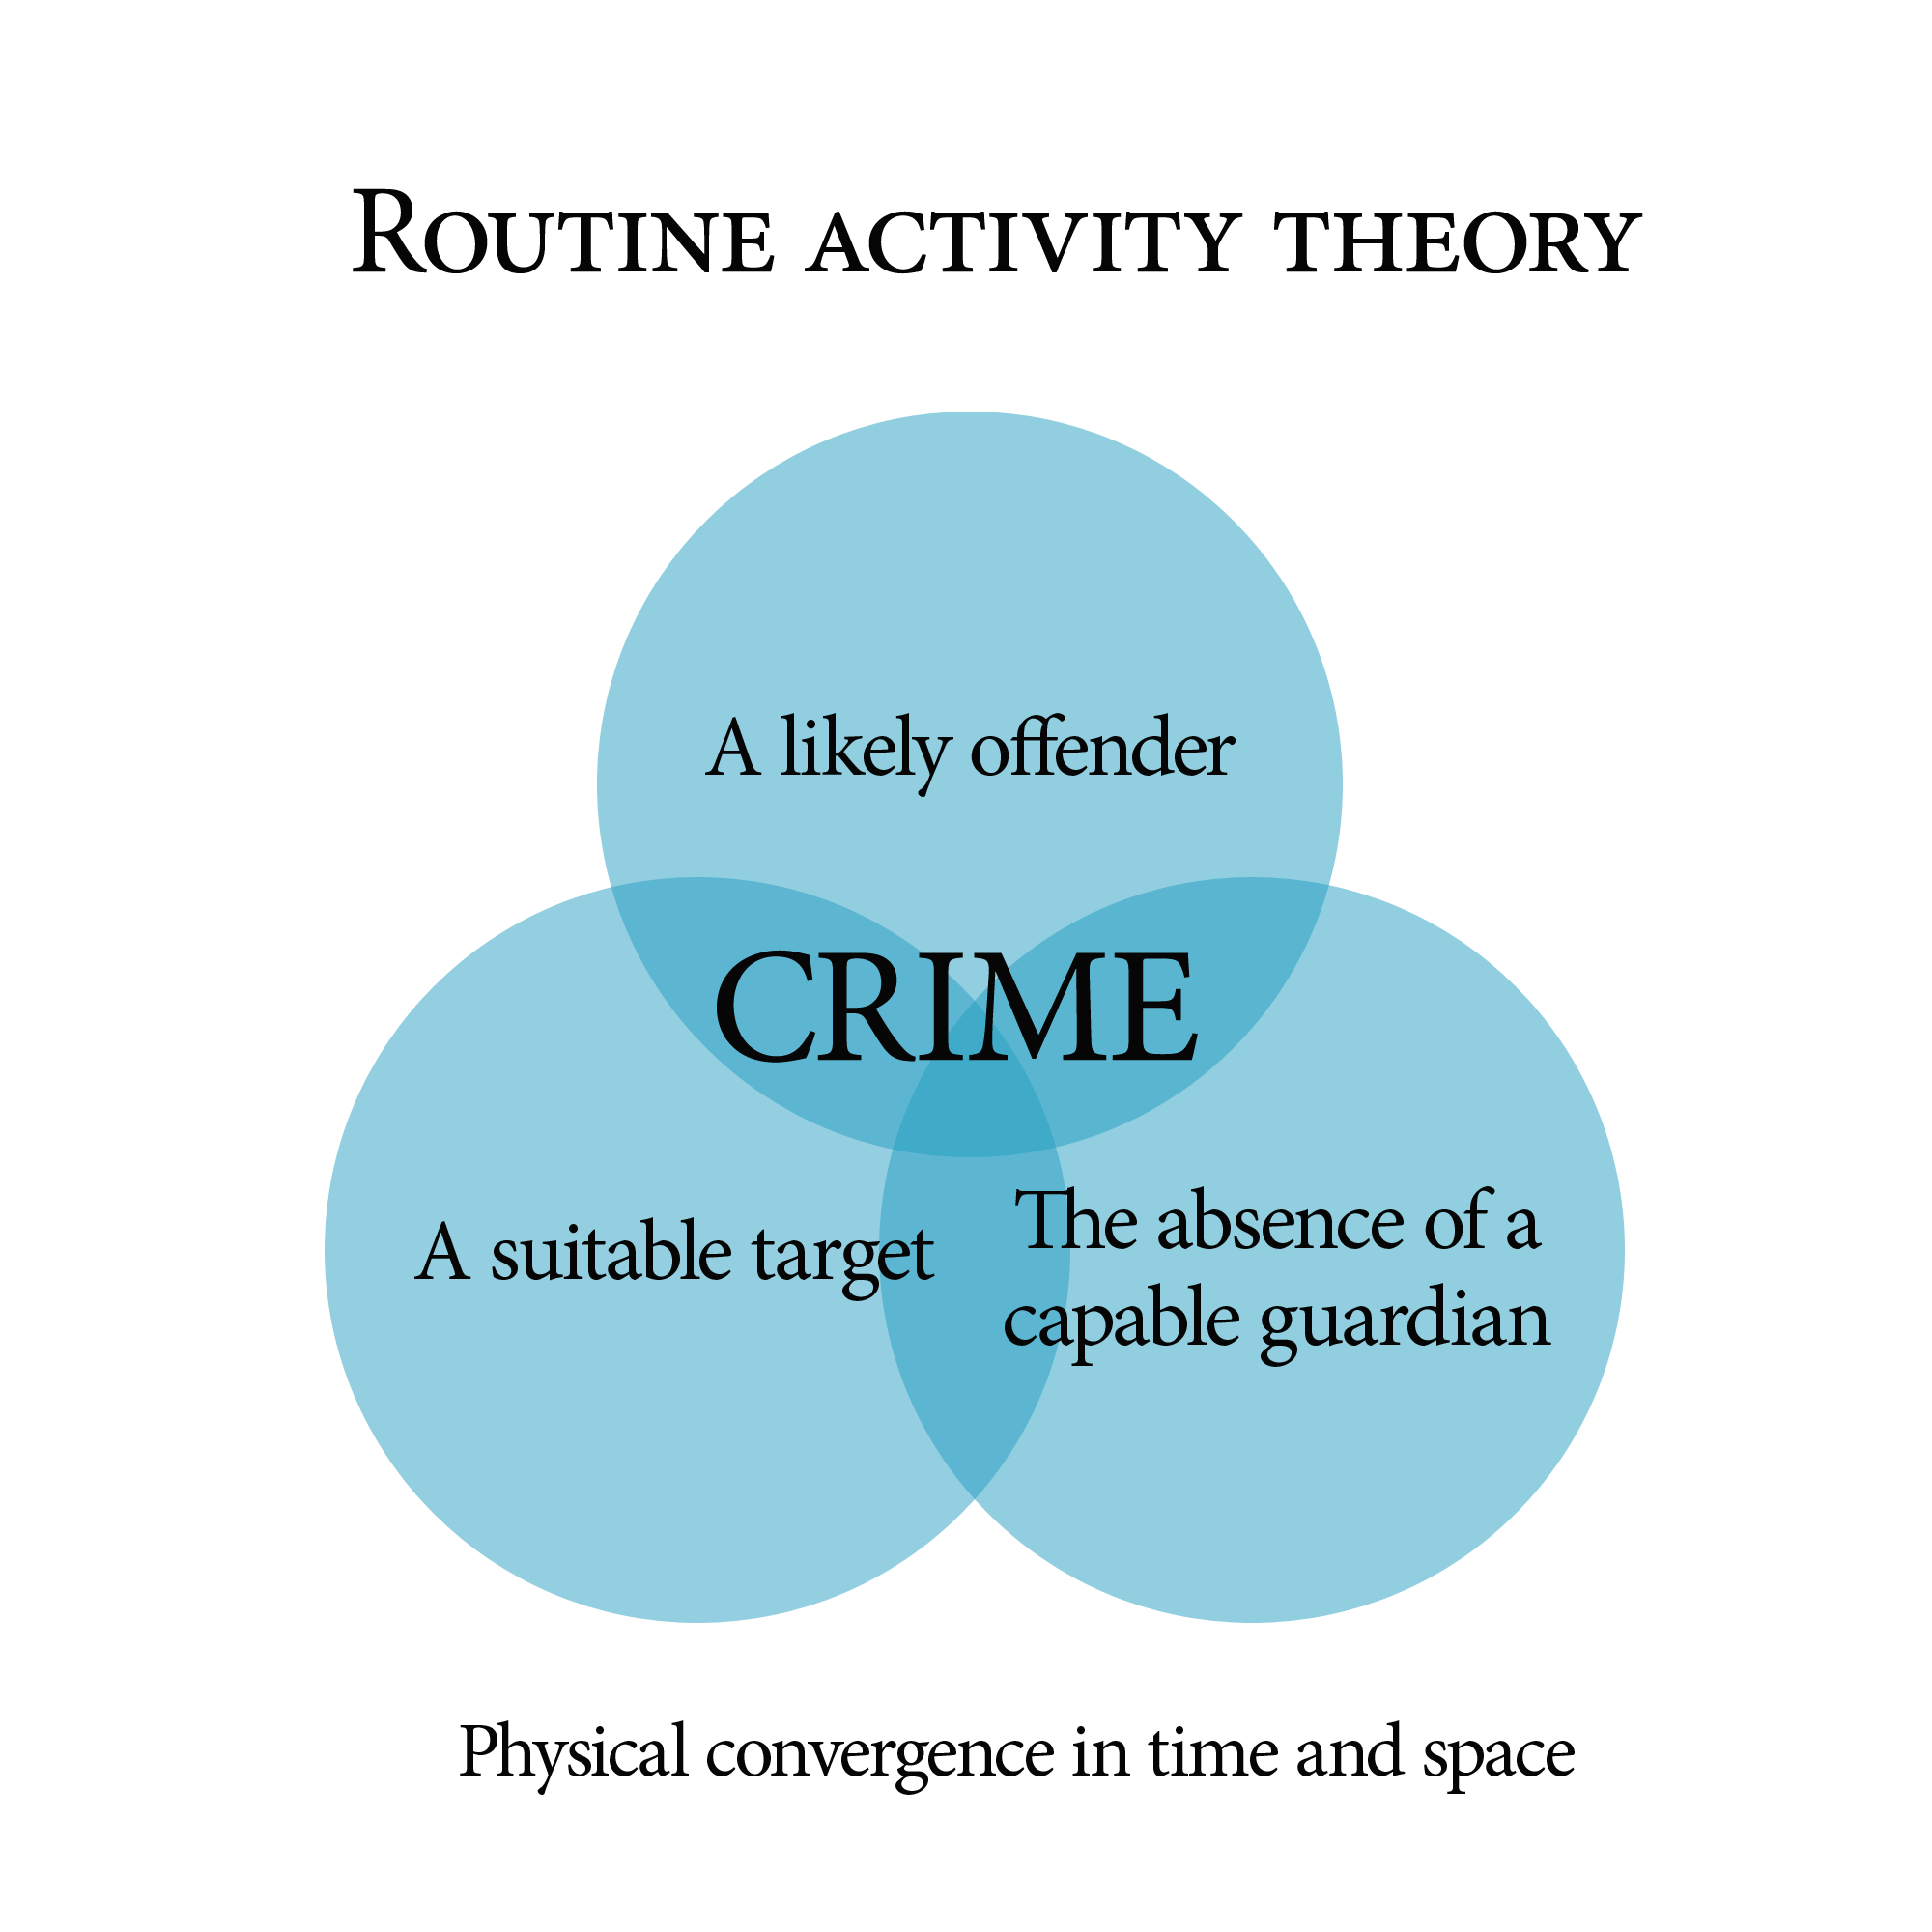 Street Light Theory: Routine Activity Theory